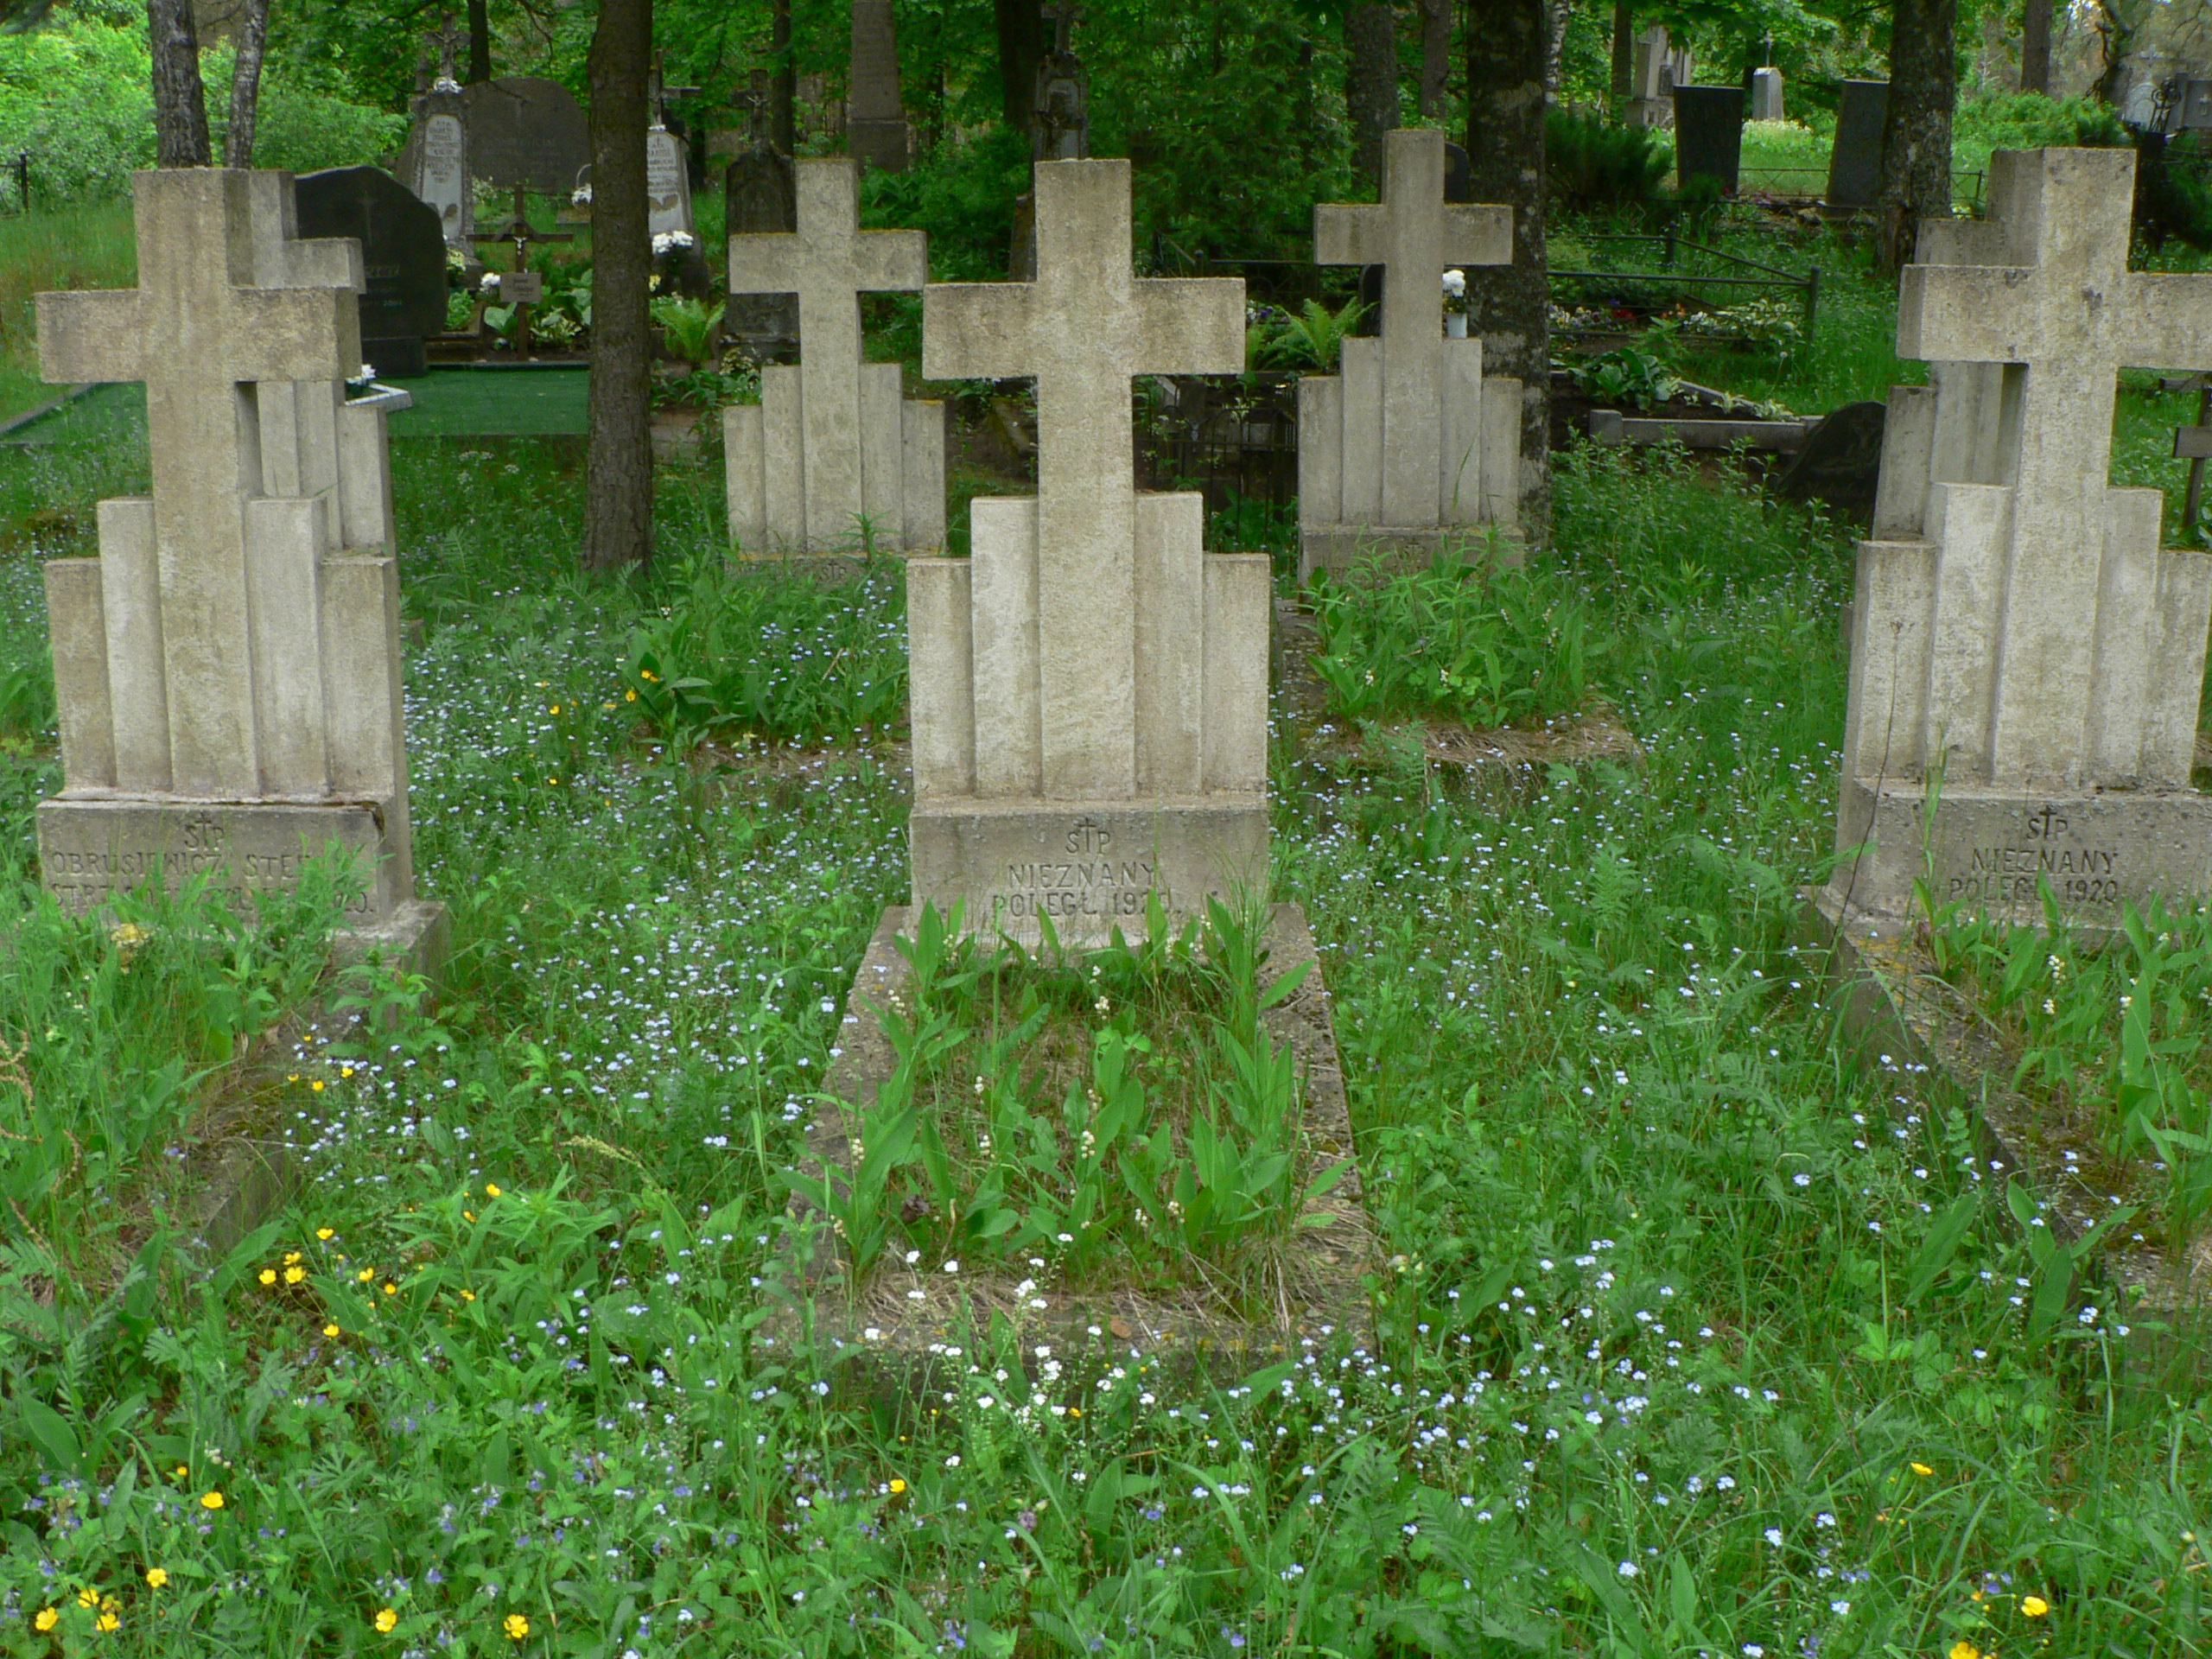 File:Marcinkonys graves.jpg - Wikimedia Commons